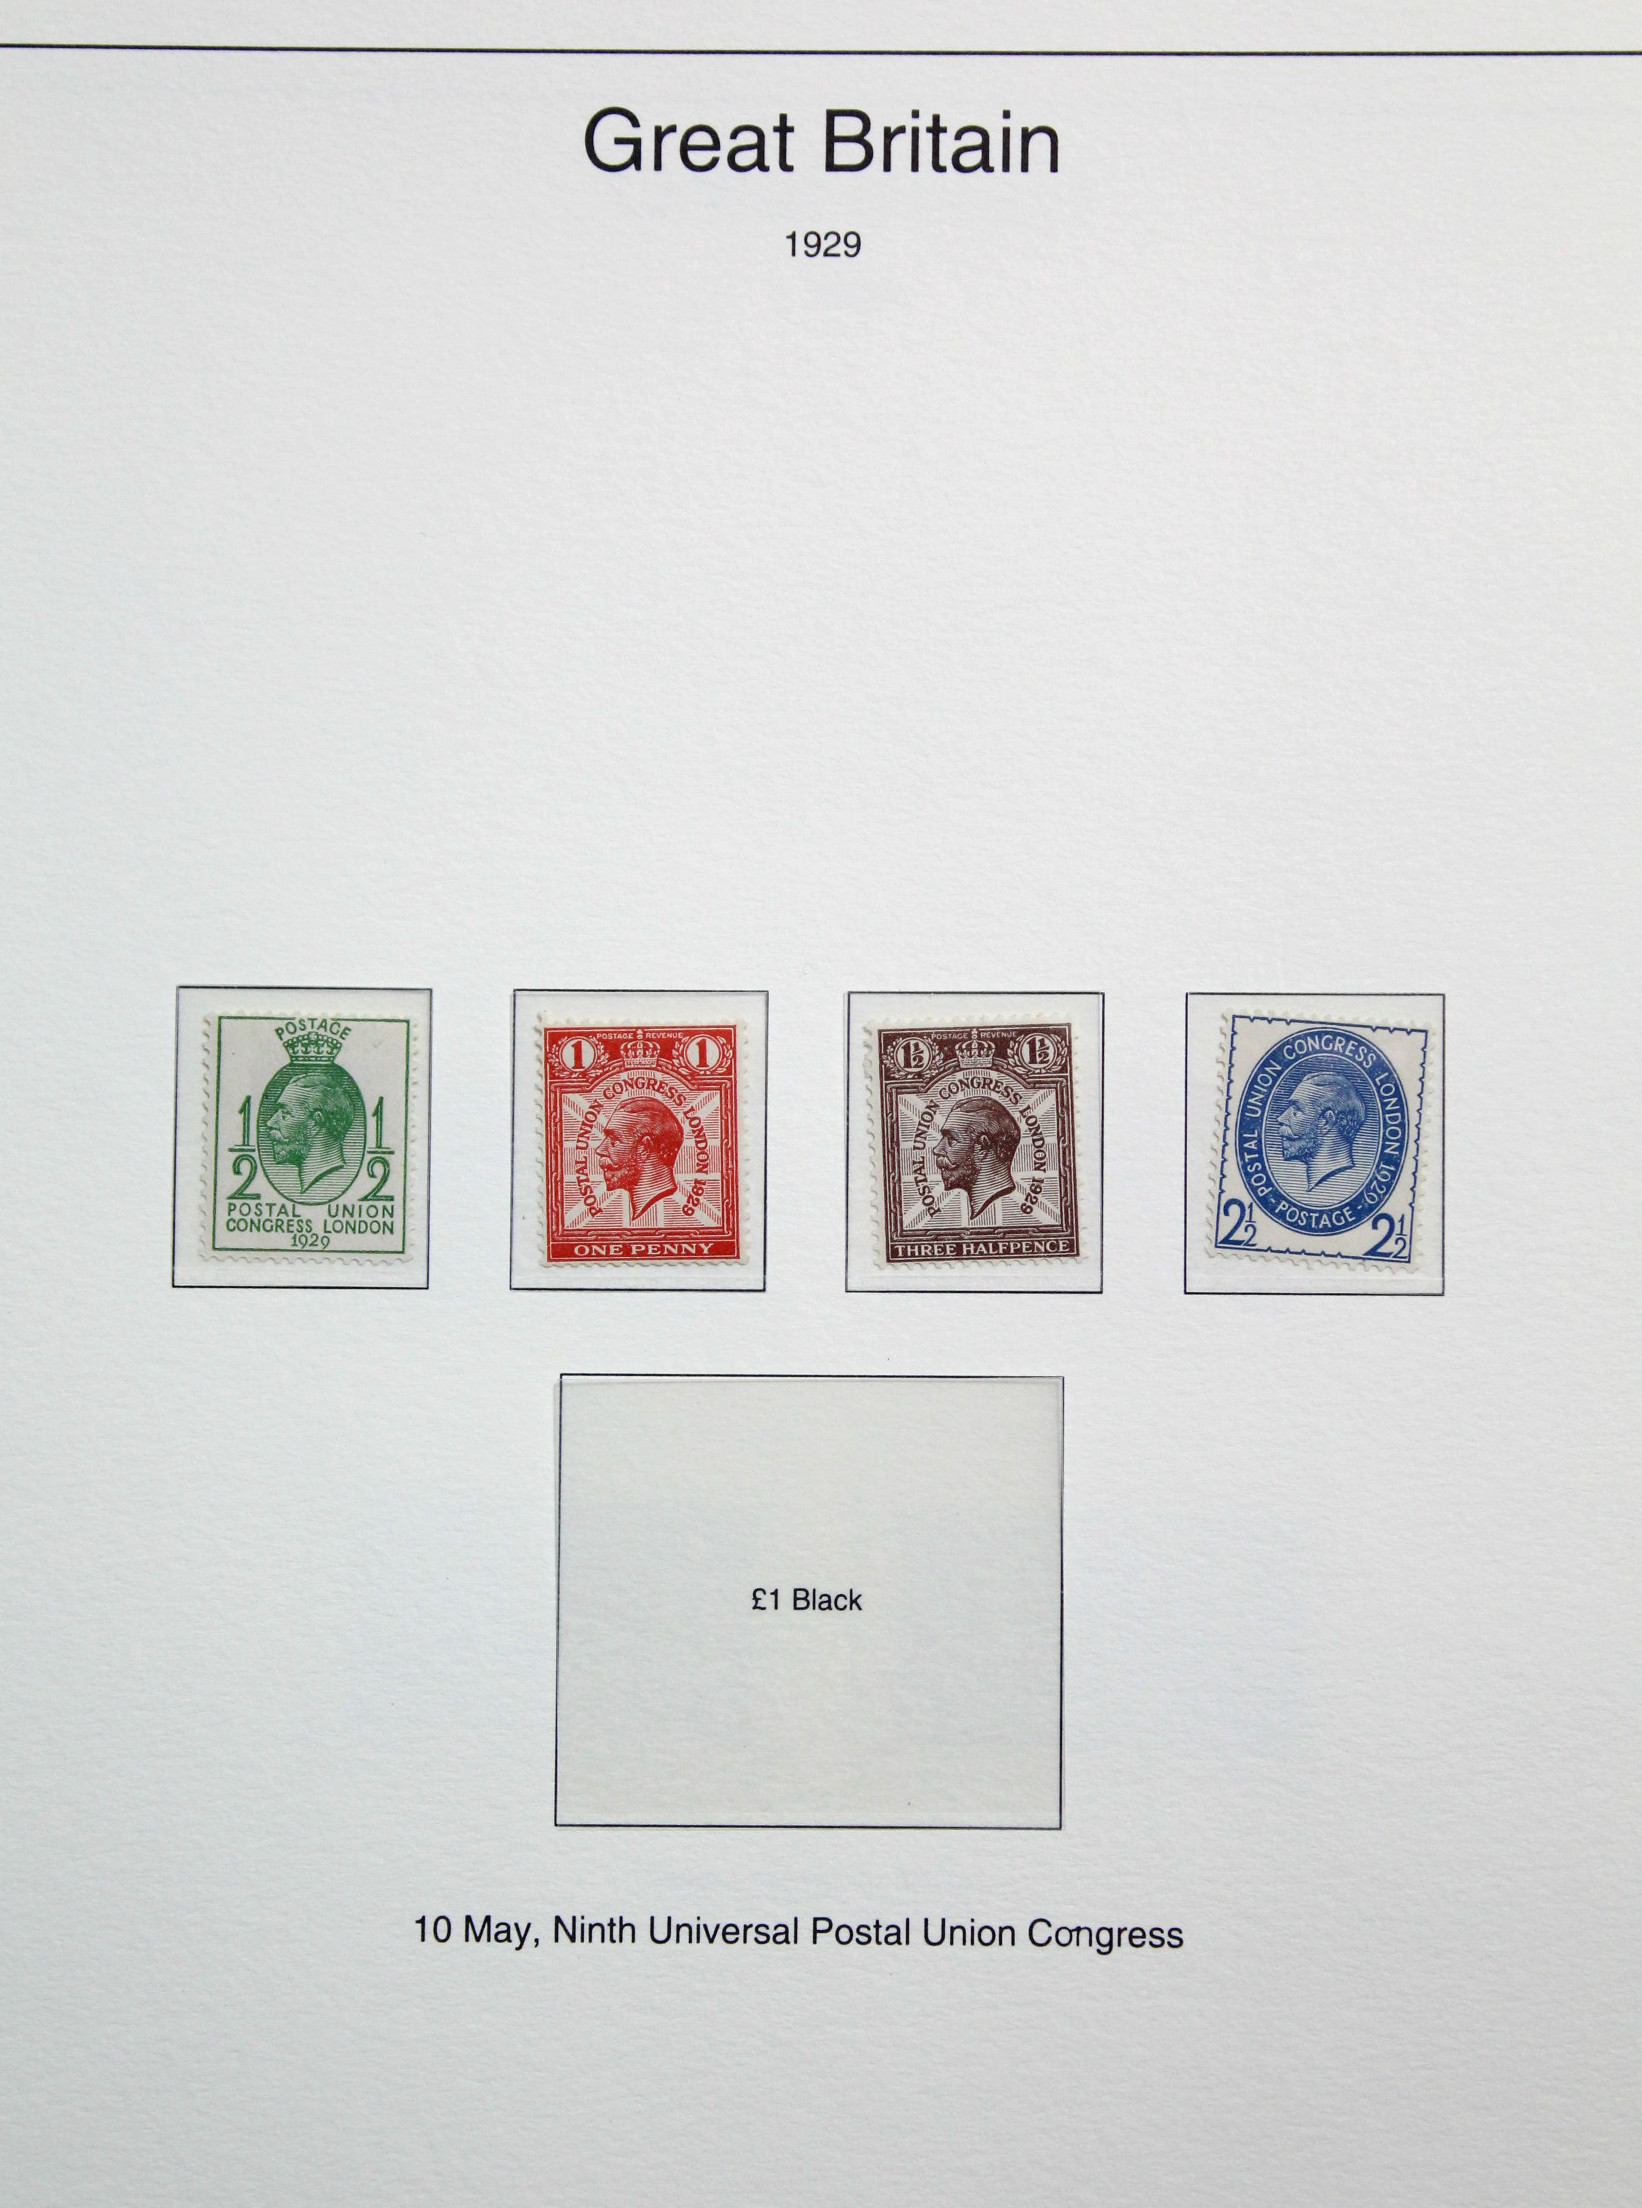 Lot 278 - A part-collection of G. B. stamps & covers including a few Victorian issues, in five ring-binder